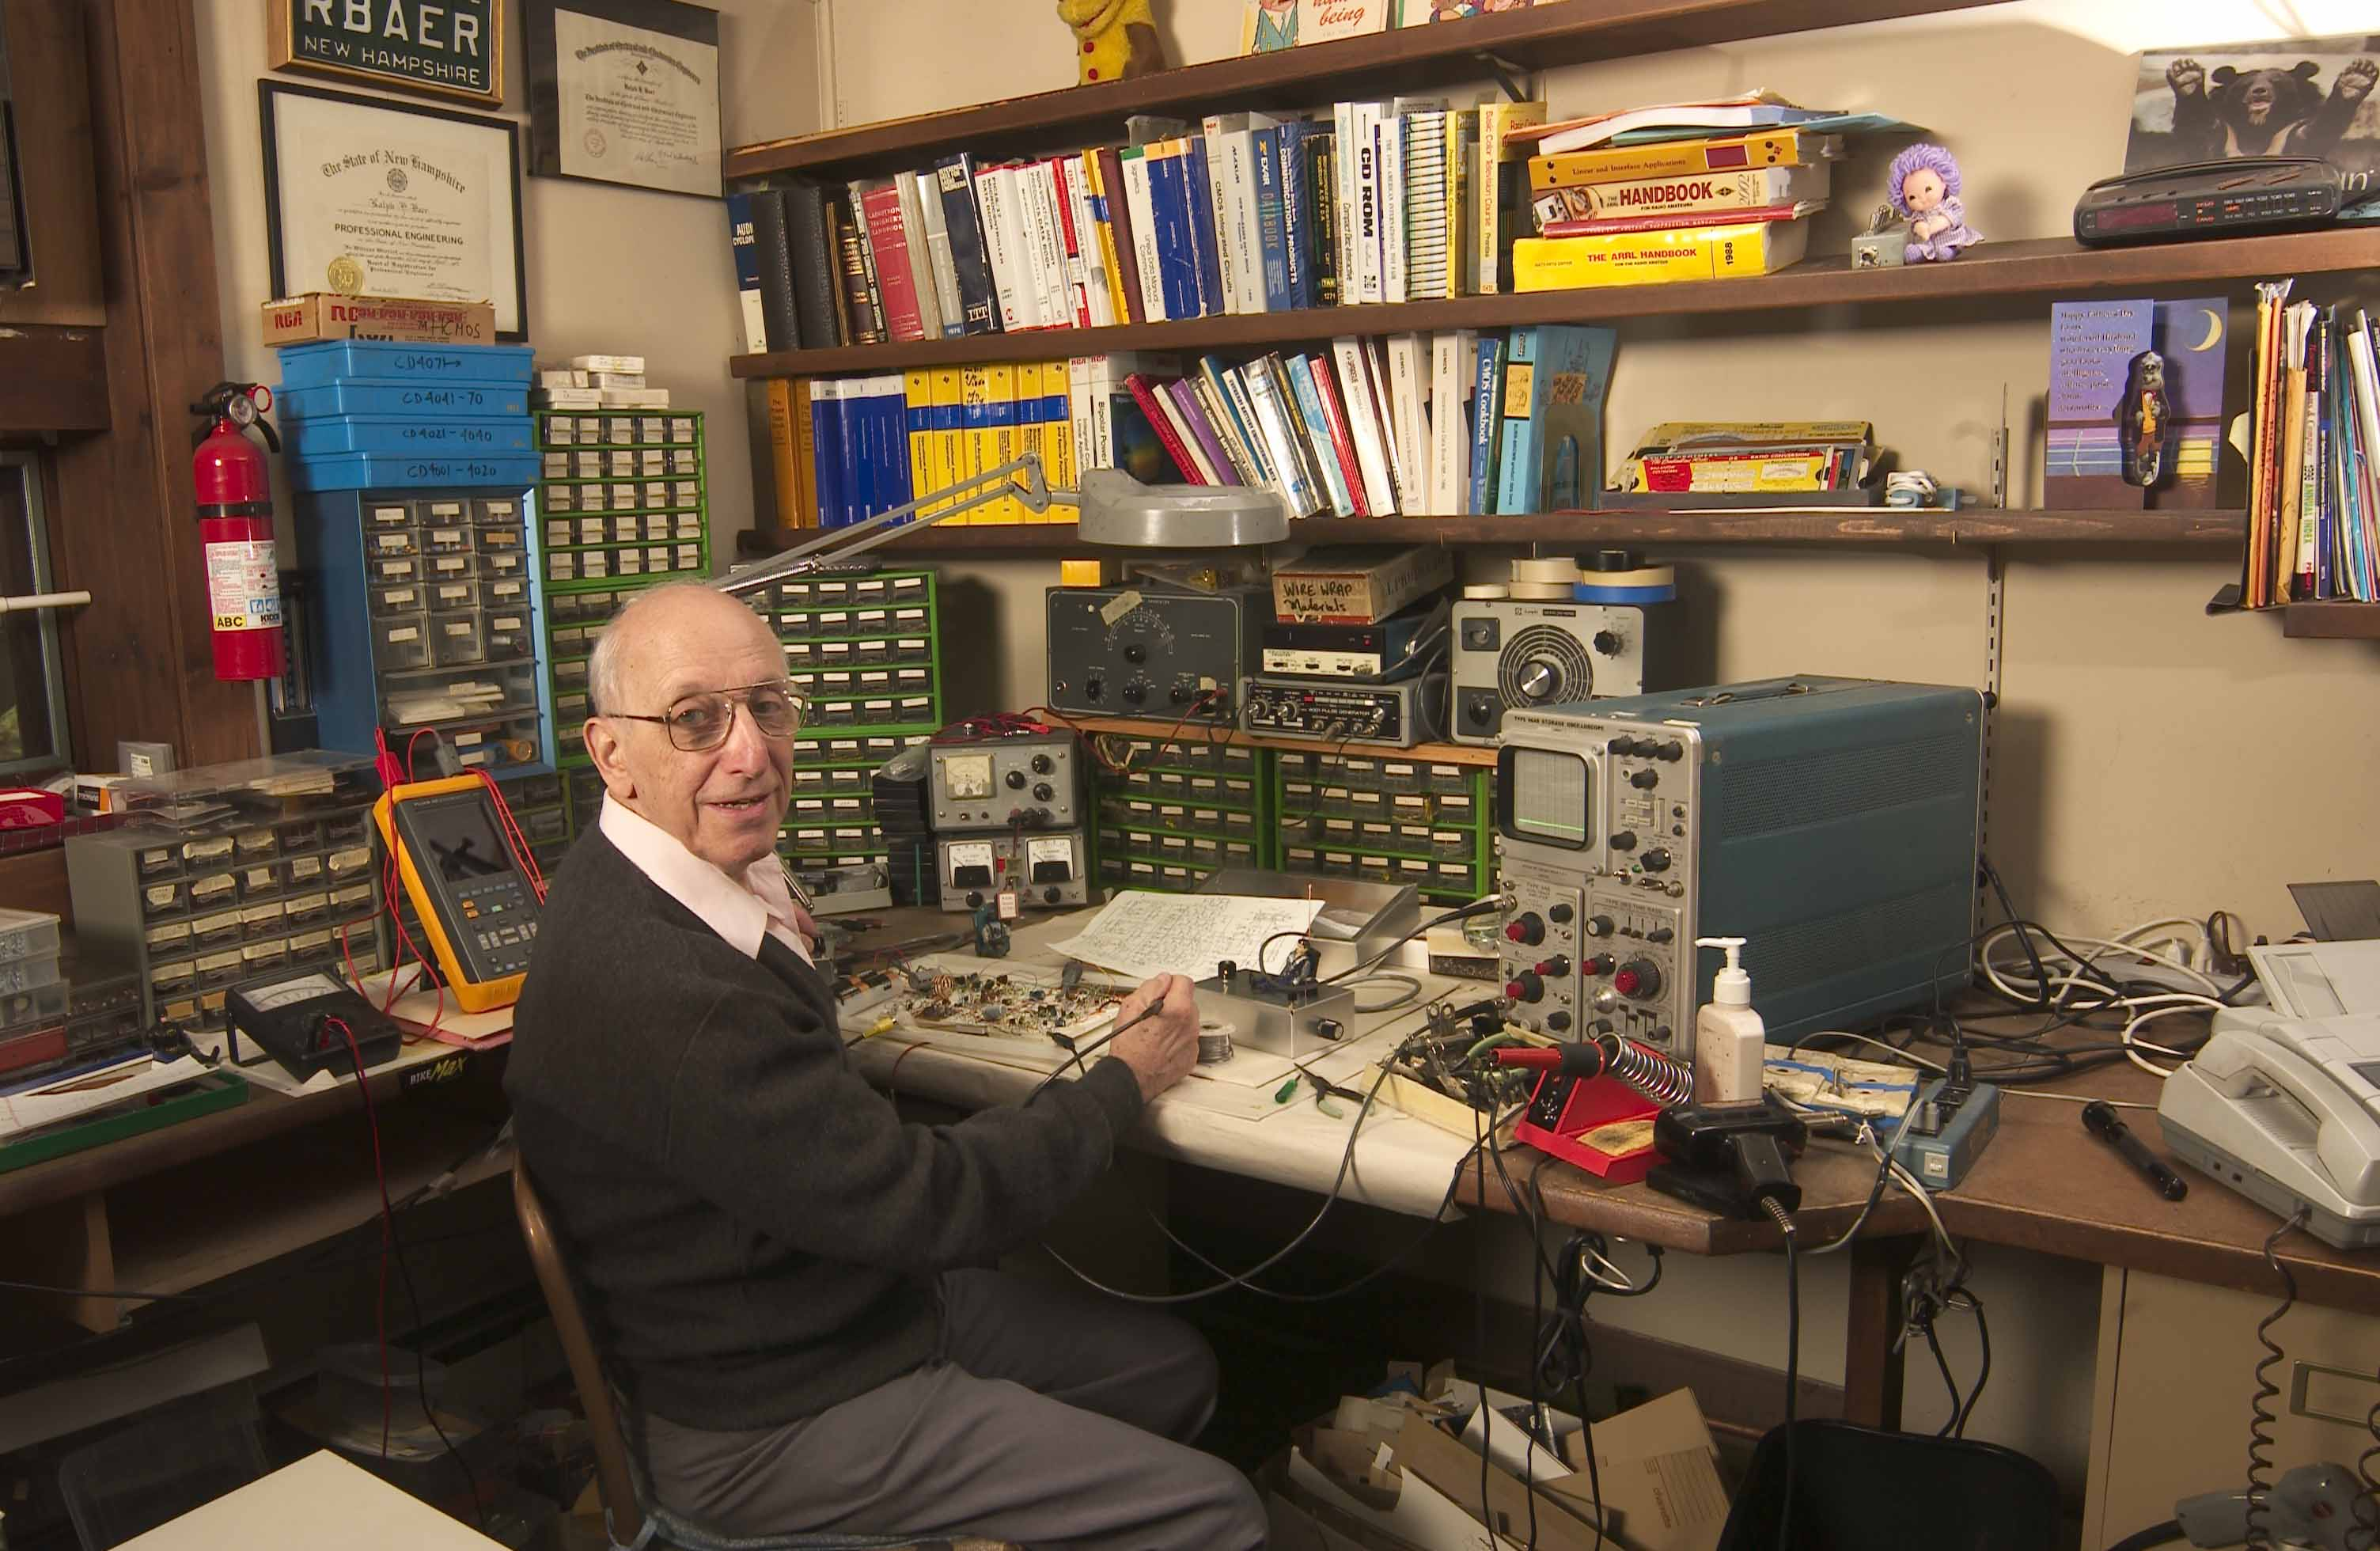 Image of Ralph Baer in his home workshop